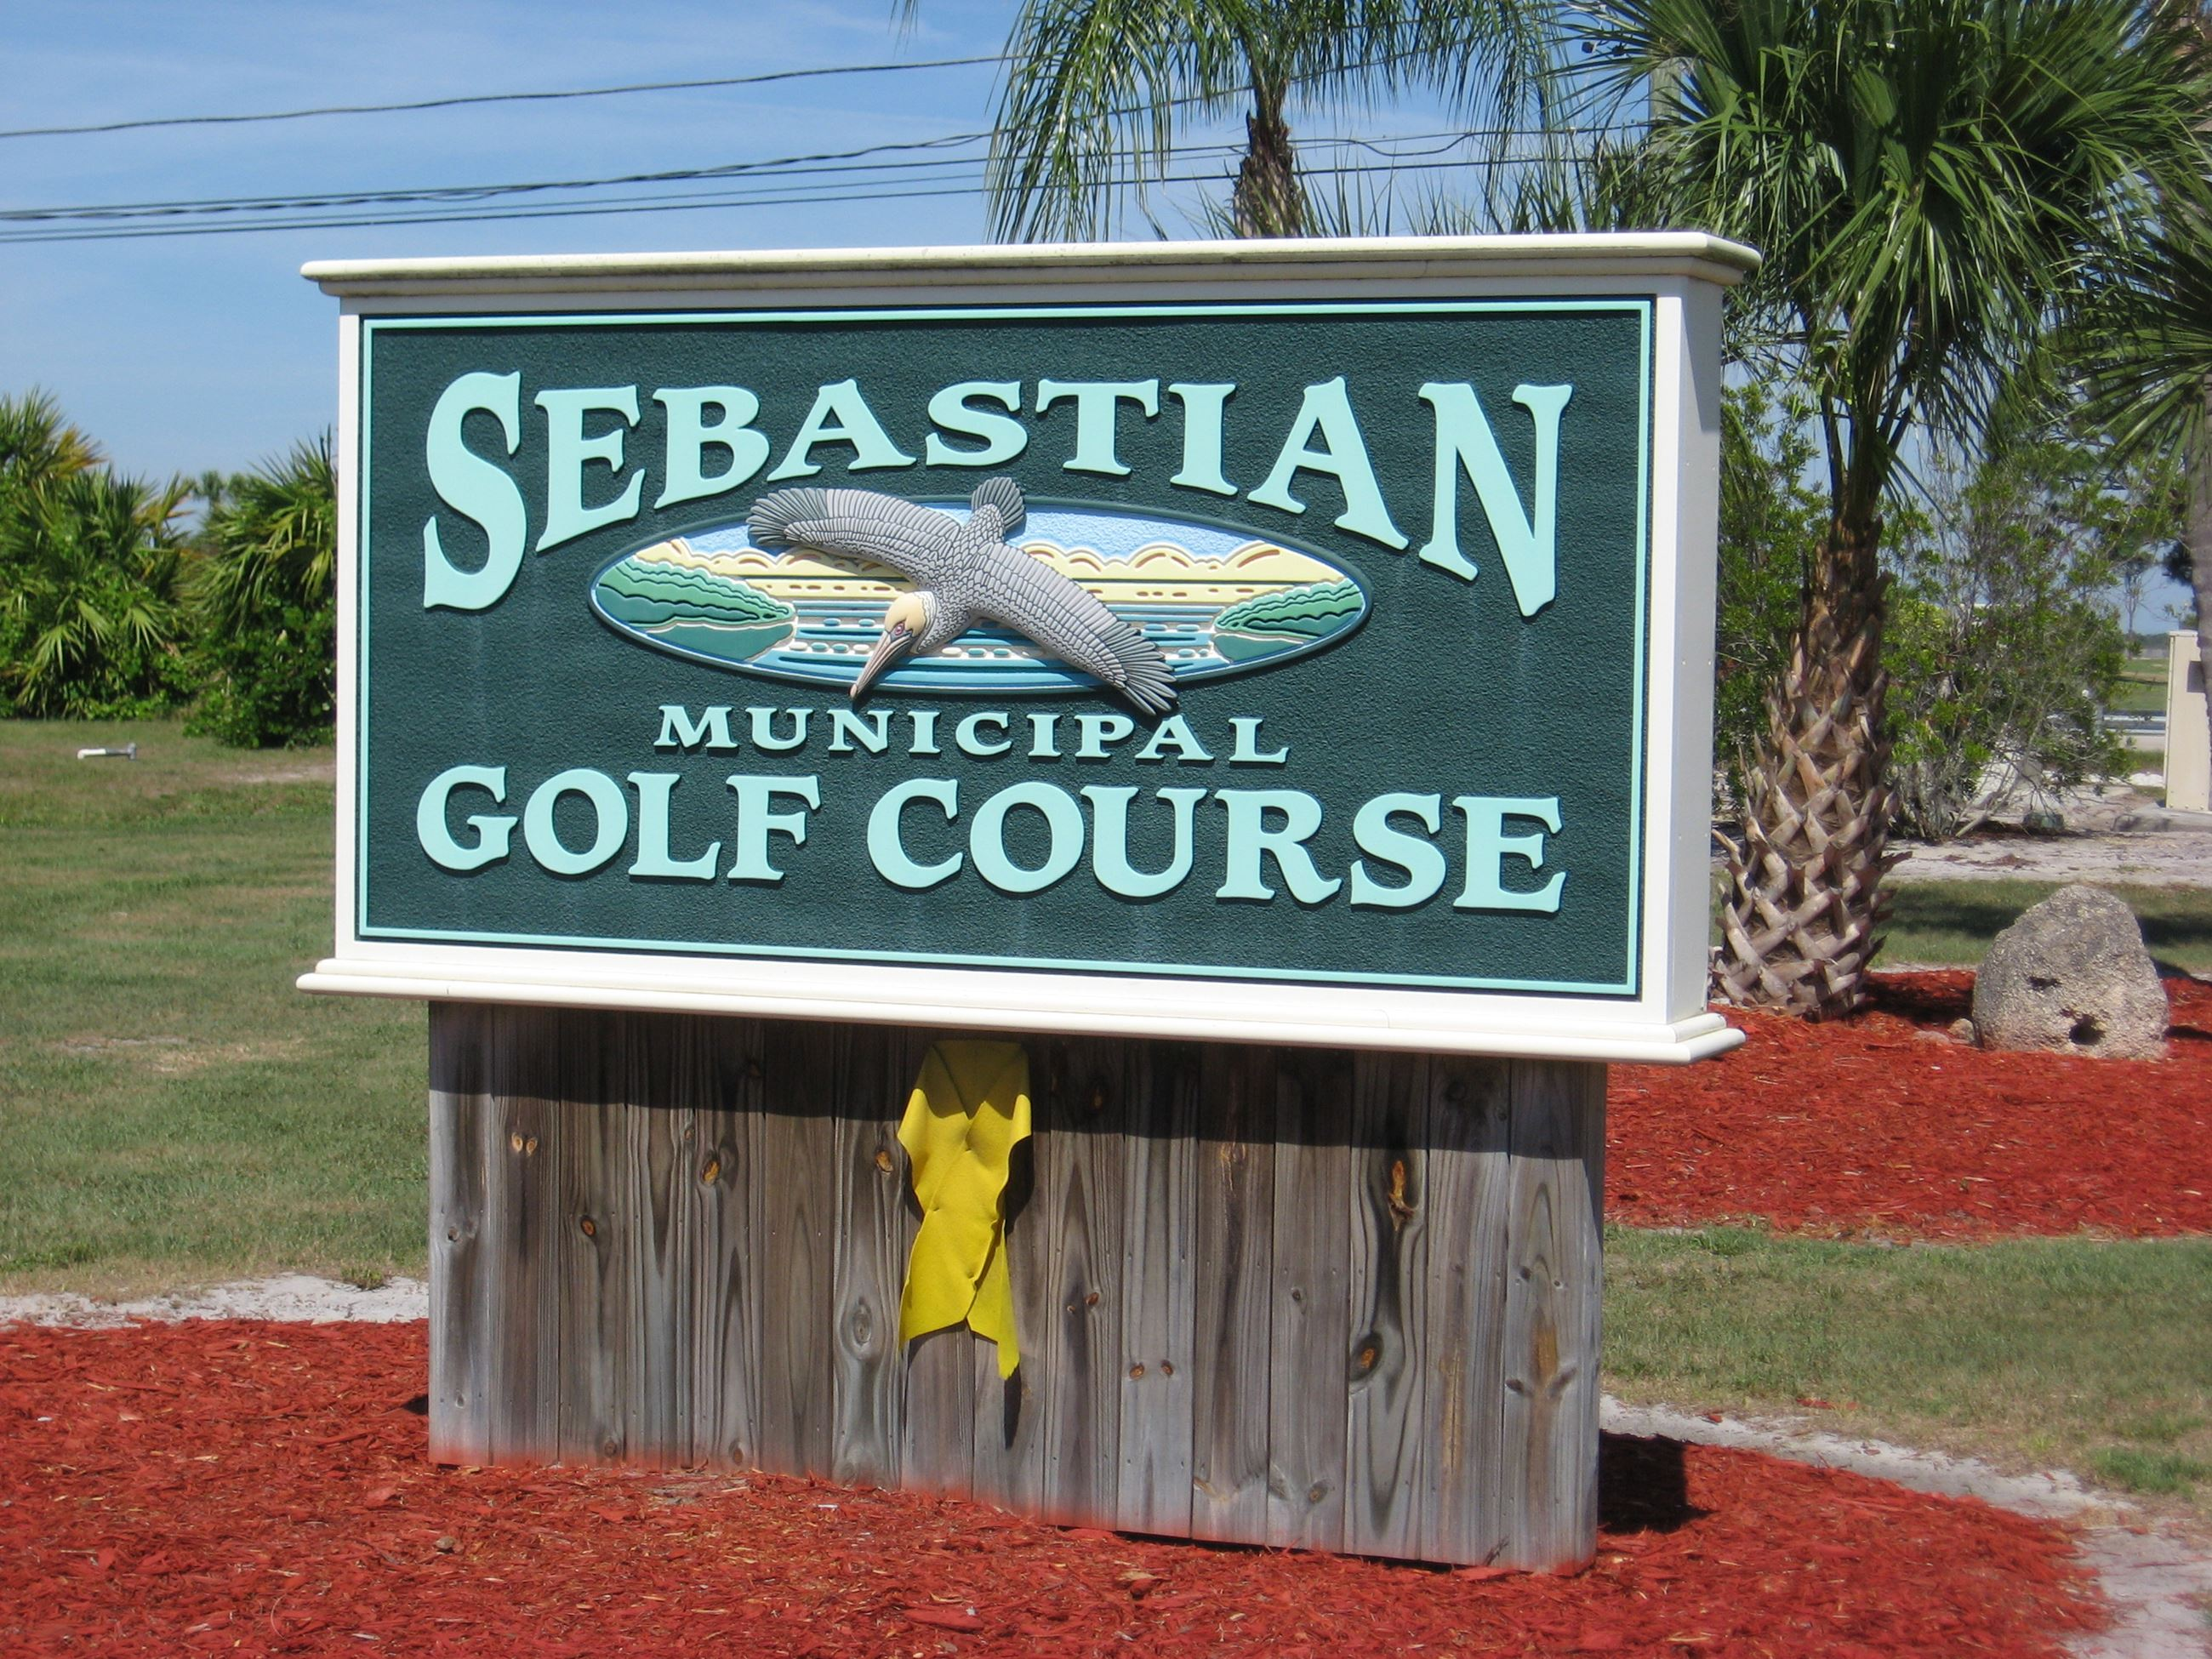 The Sebastian Municipal Golf Course Sign